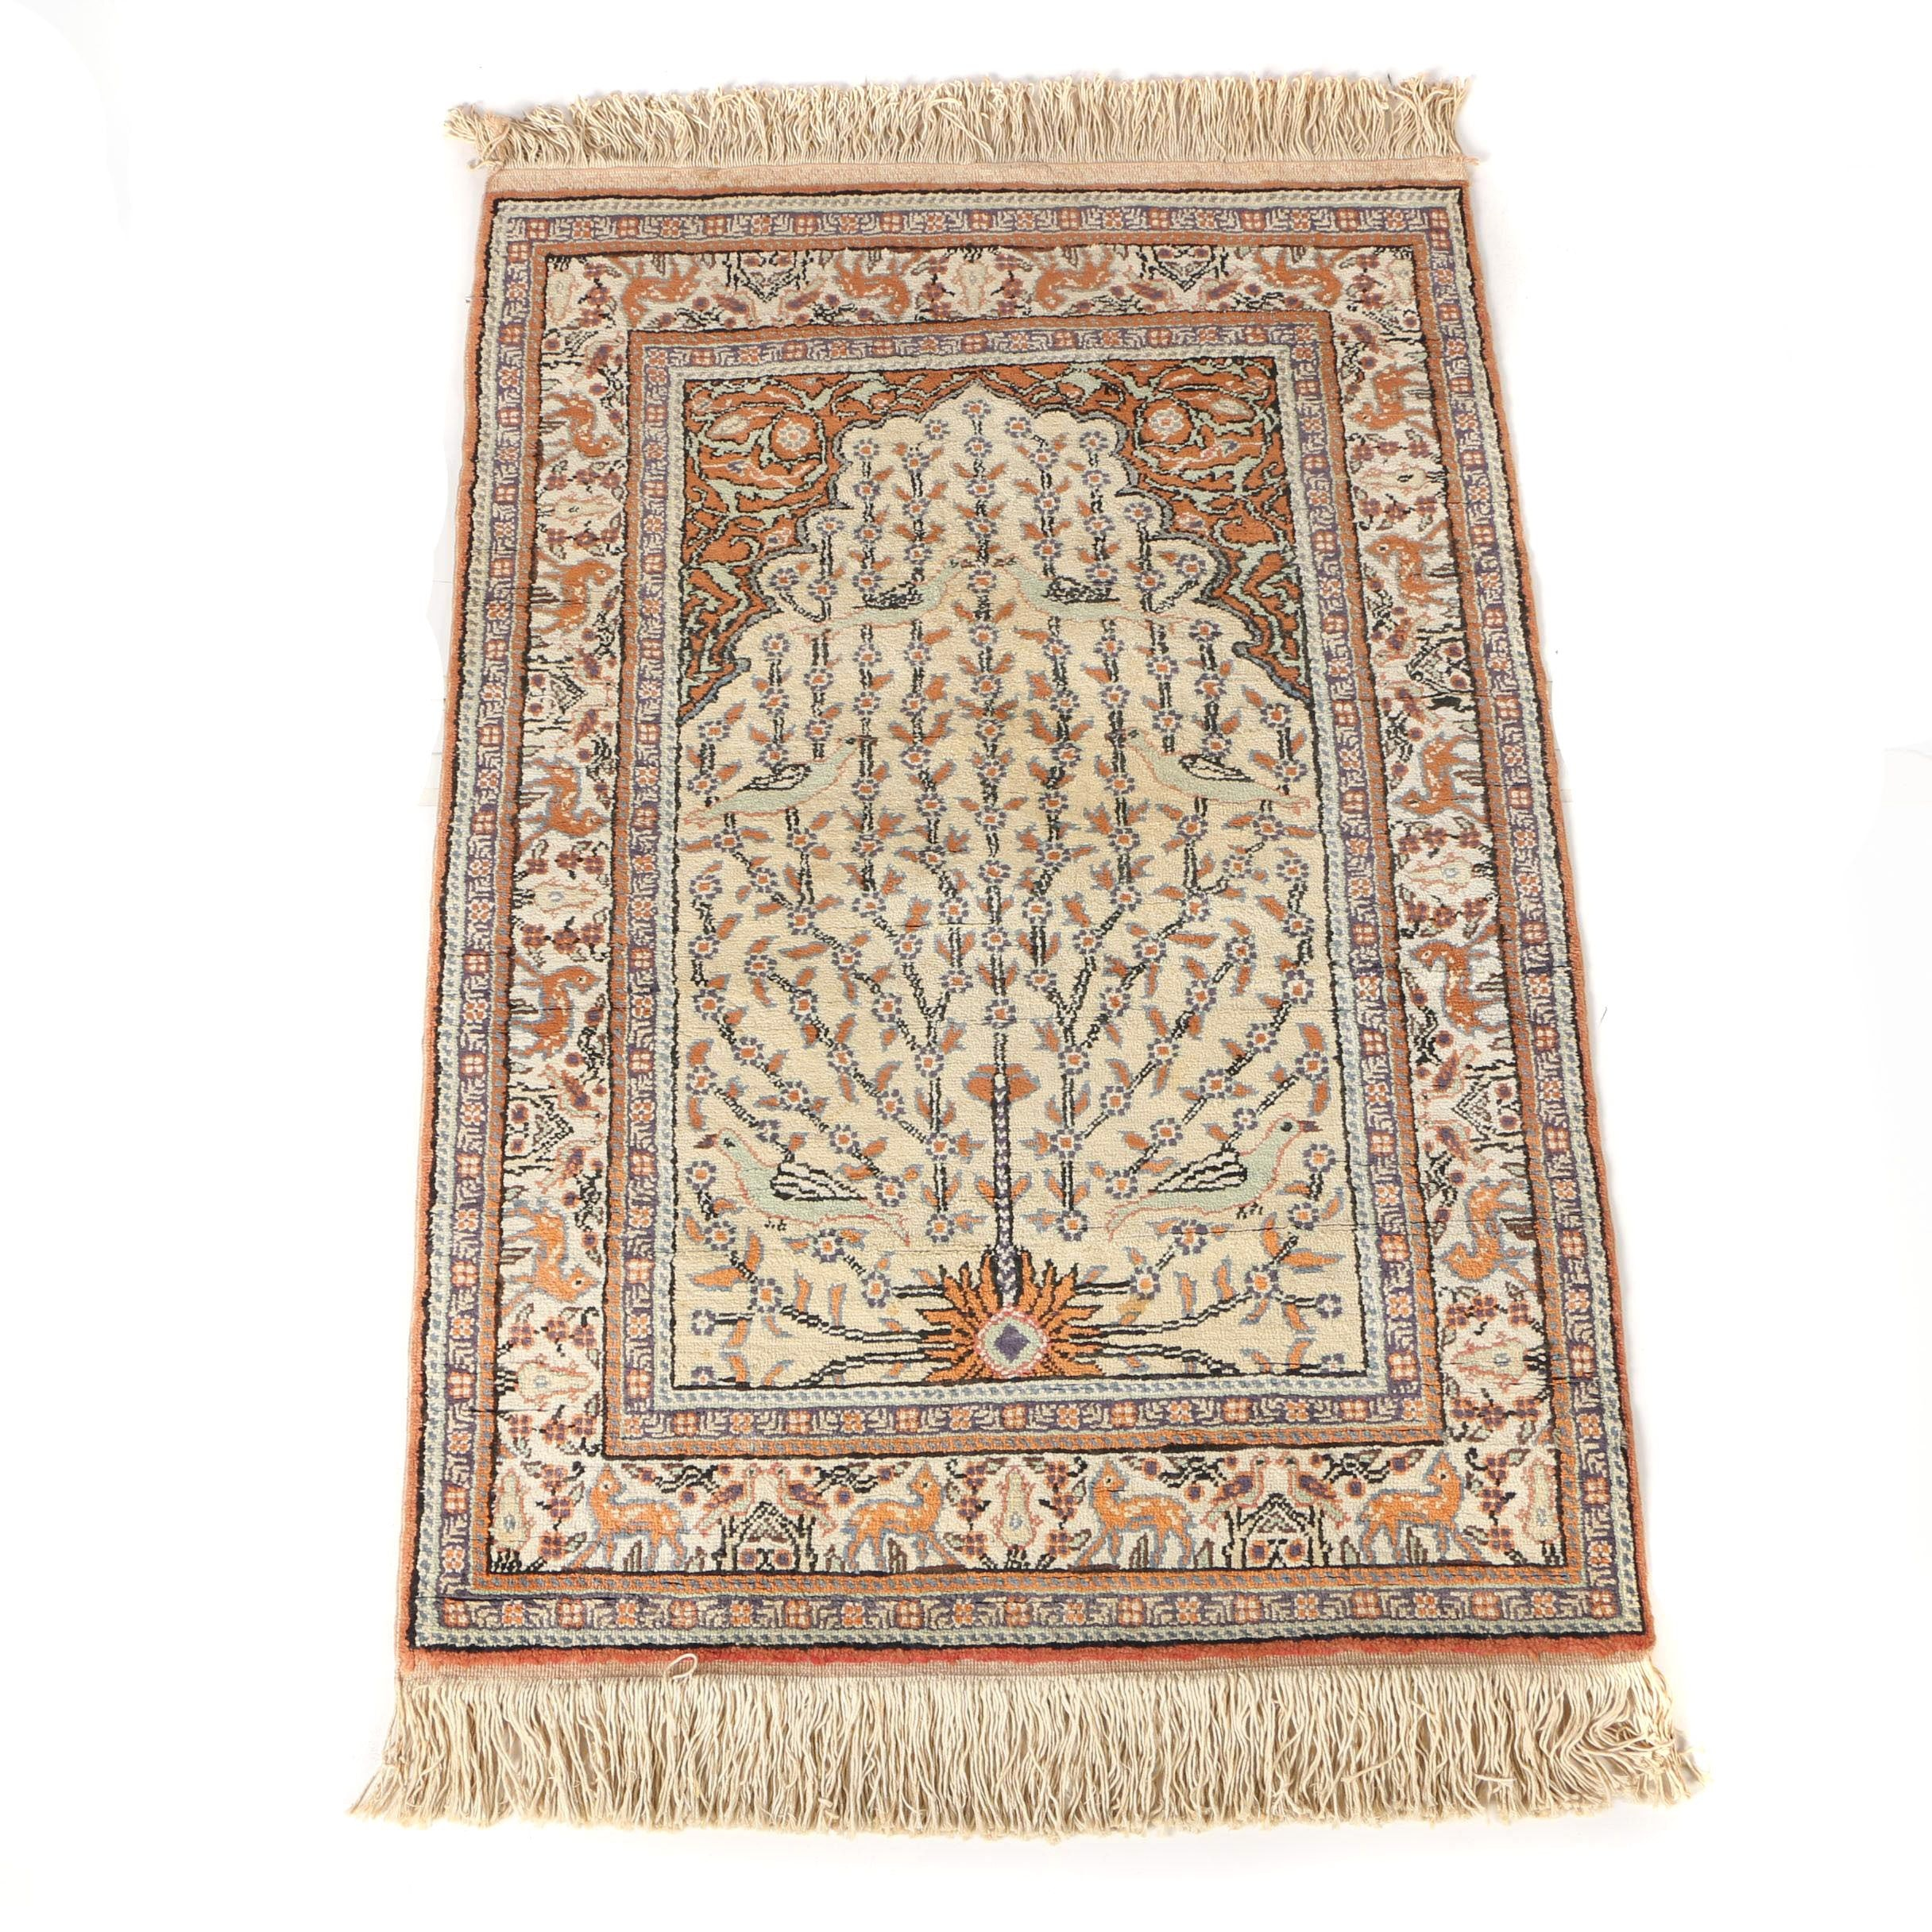 Hand-Knotted Turkish Pictorial Prayer Rug